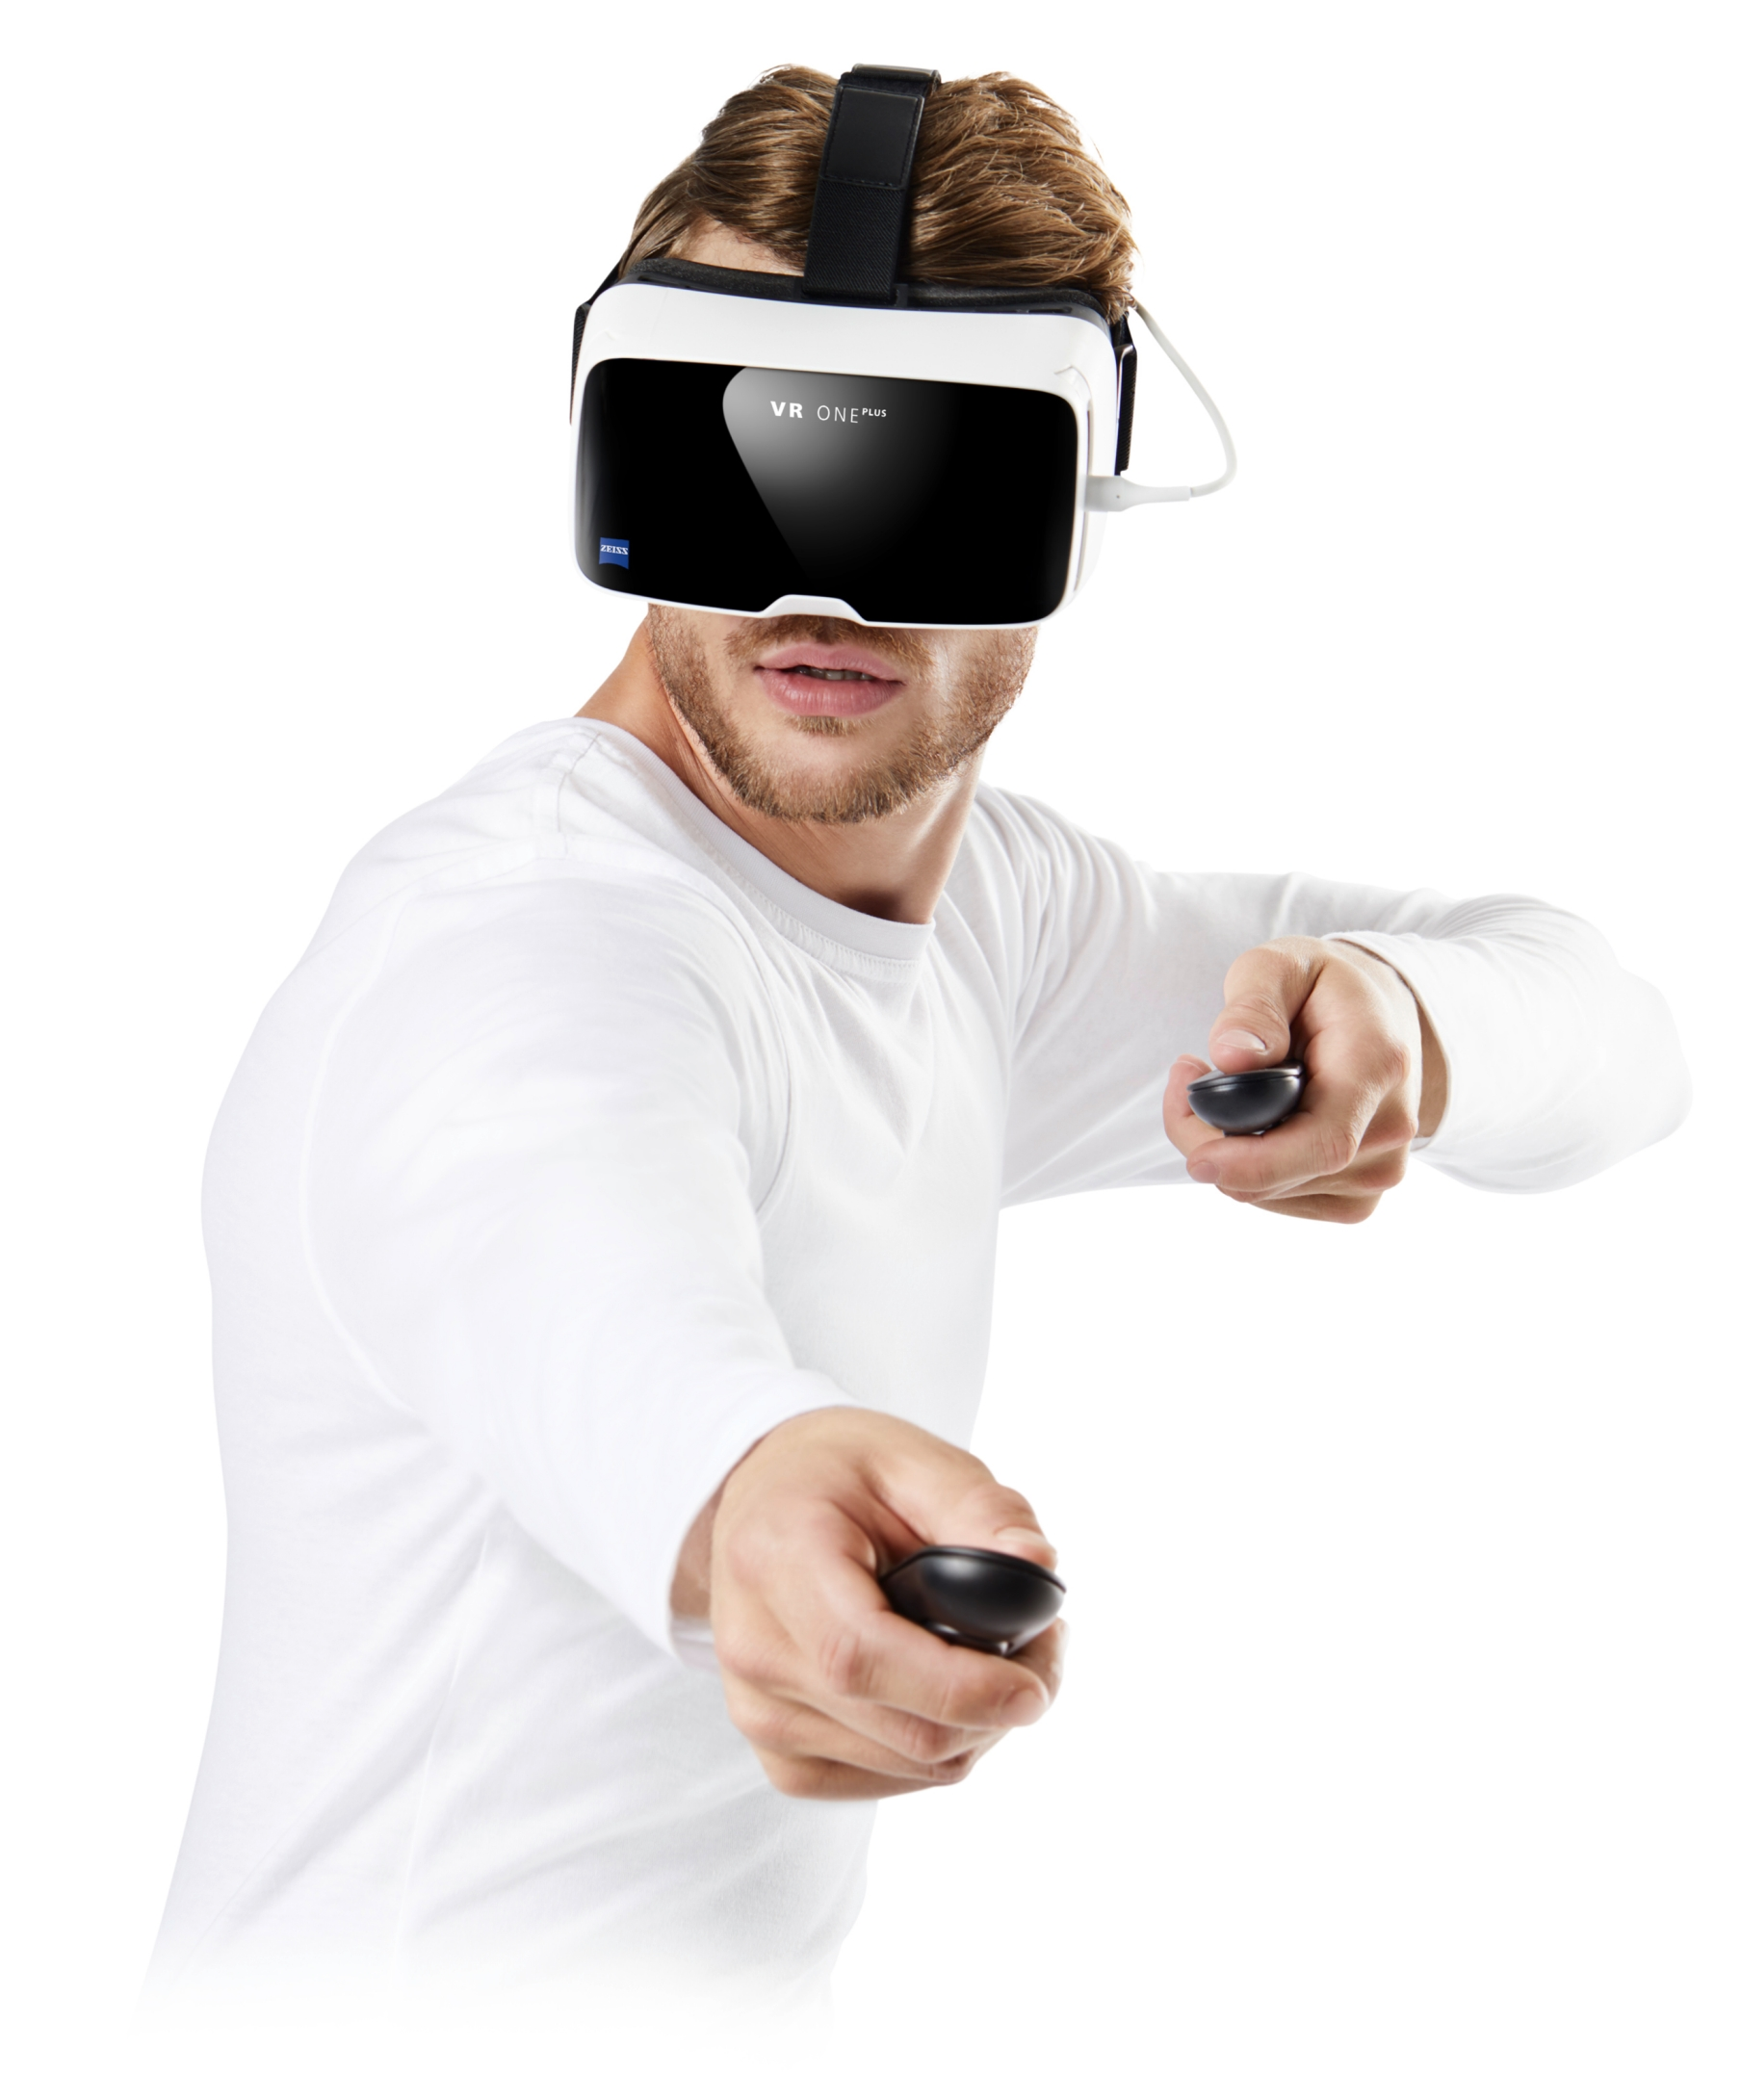 Zeiss Vr One >> Zeiss VR ONE Plus | Varle.lt